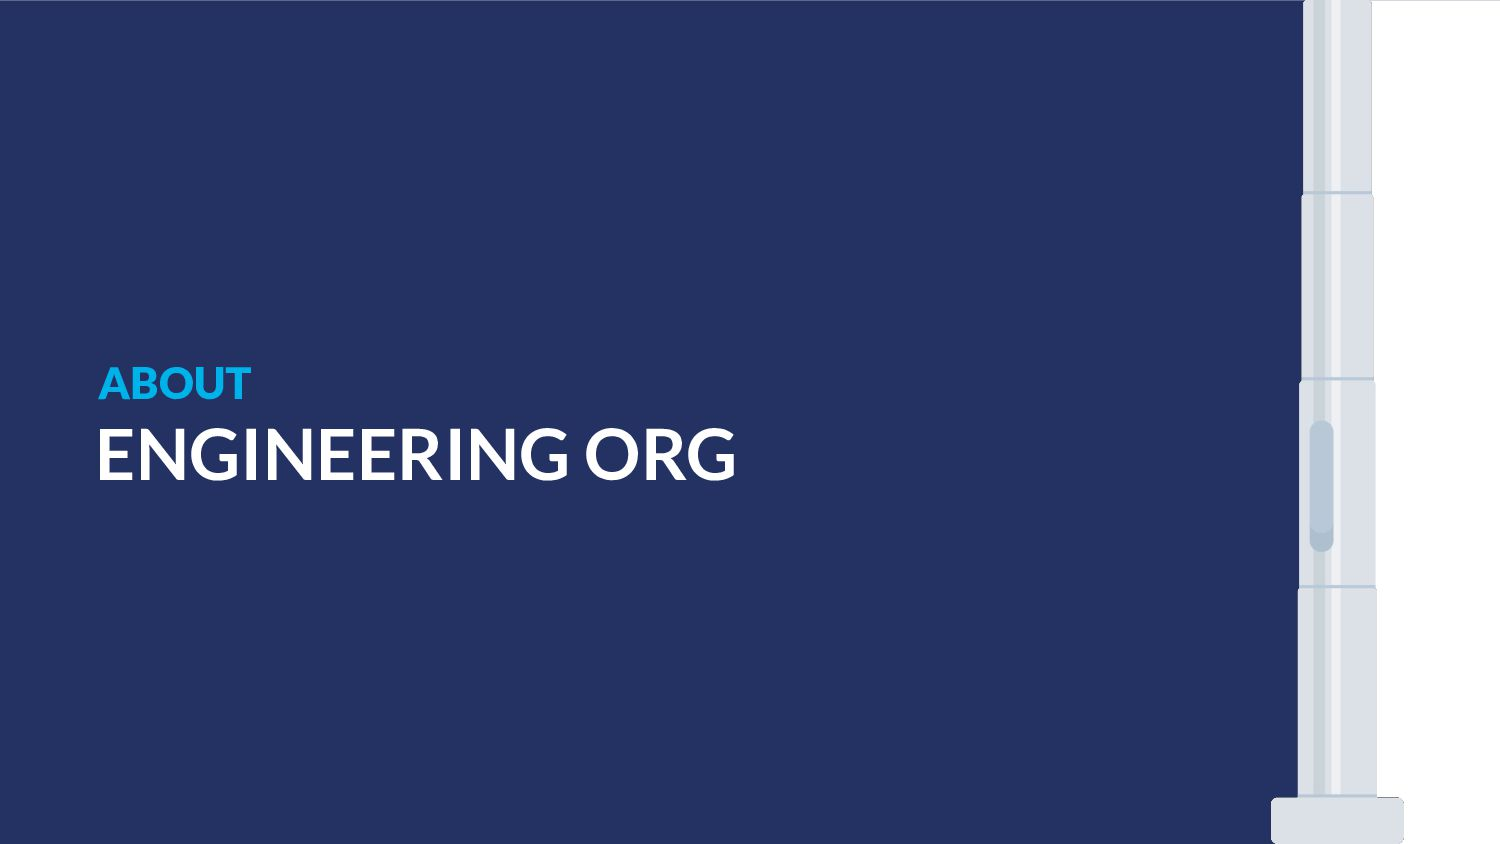 ABOUT ENGINEERING ORG